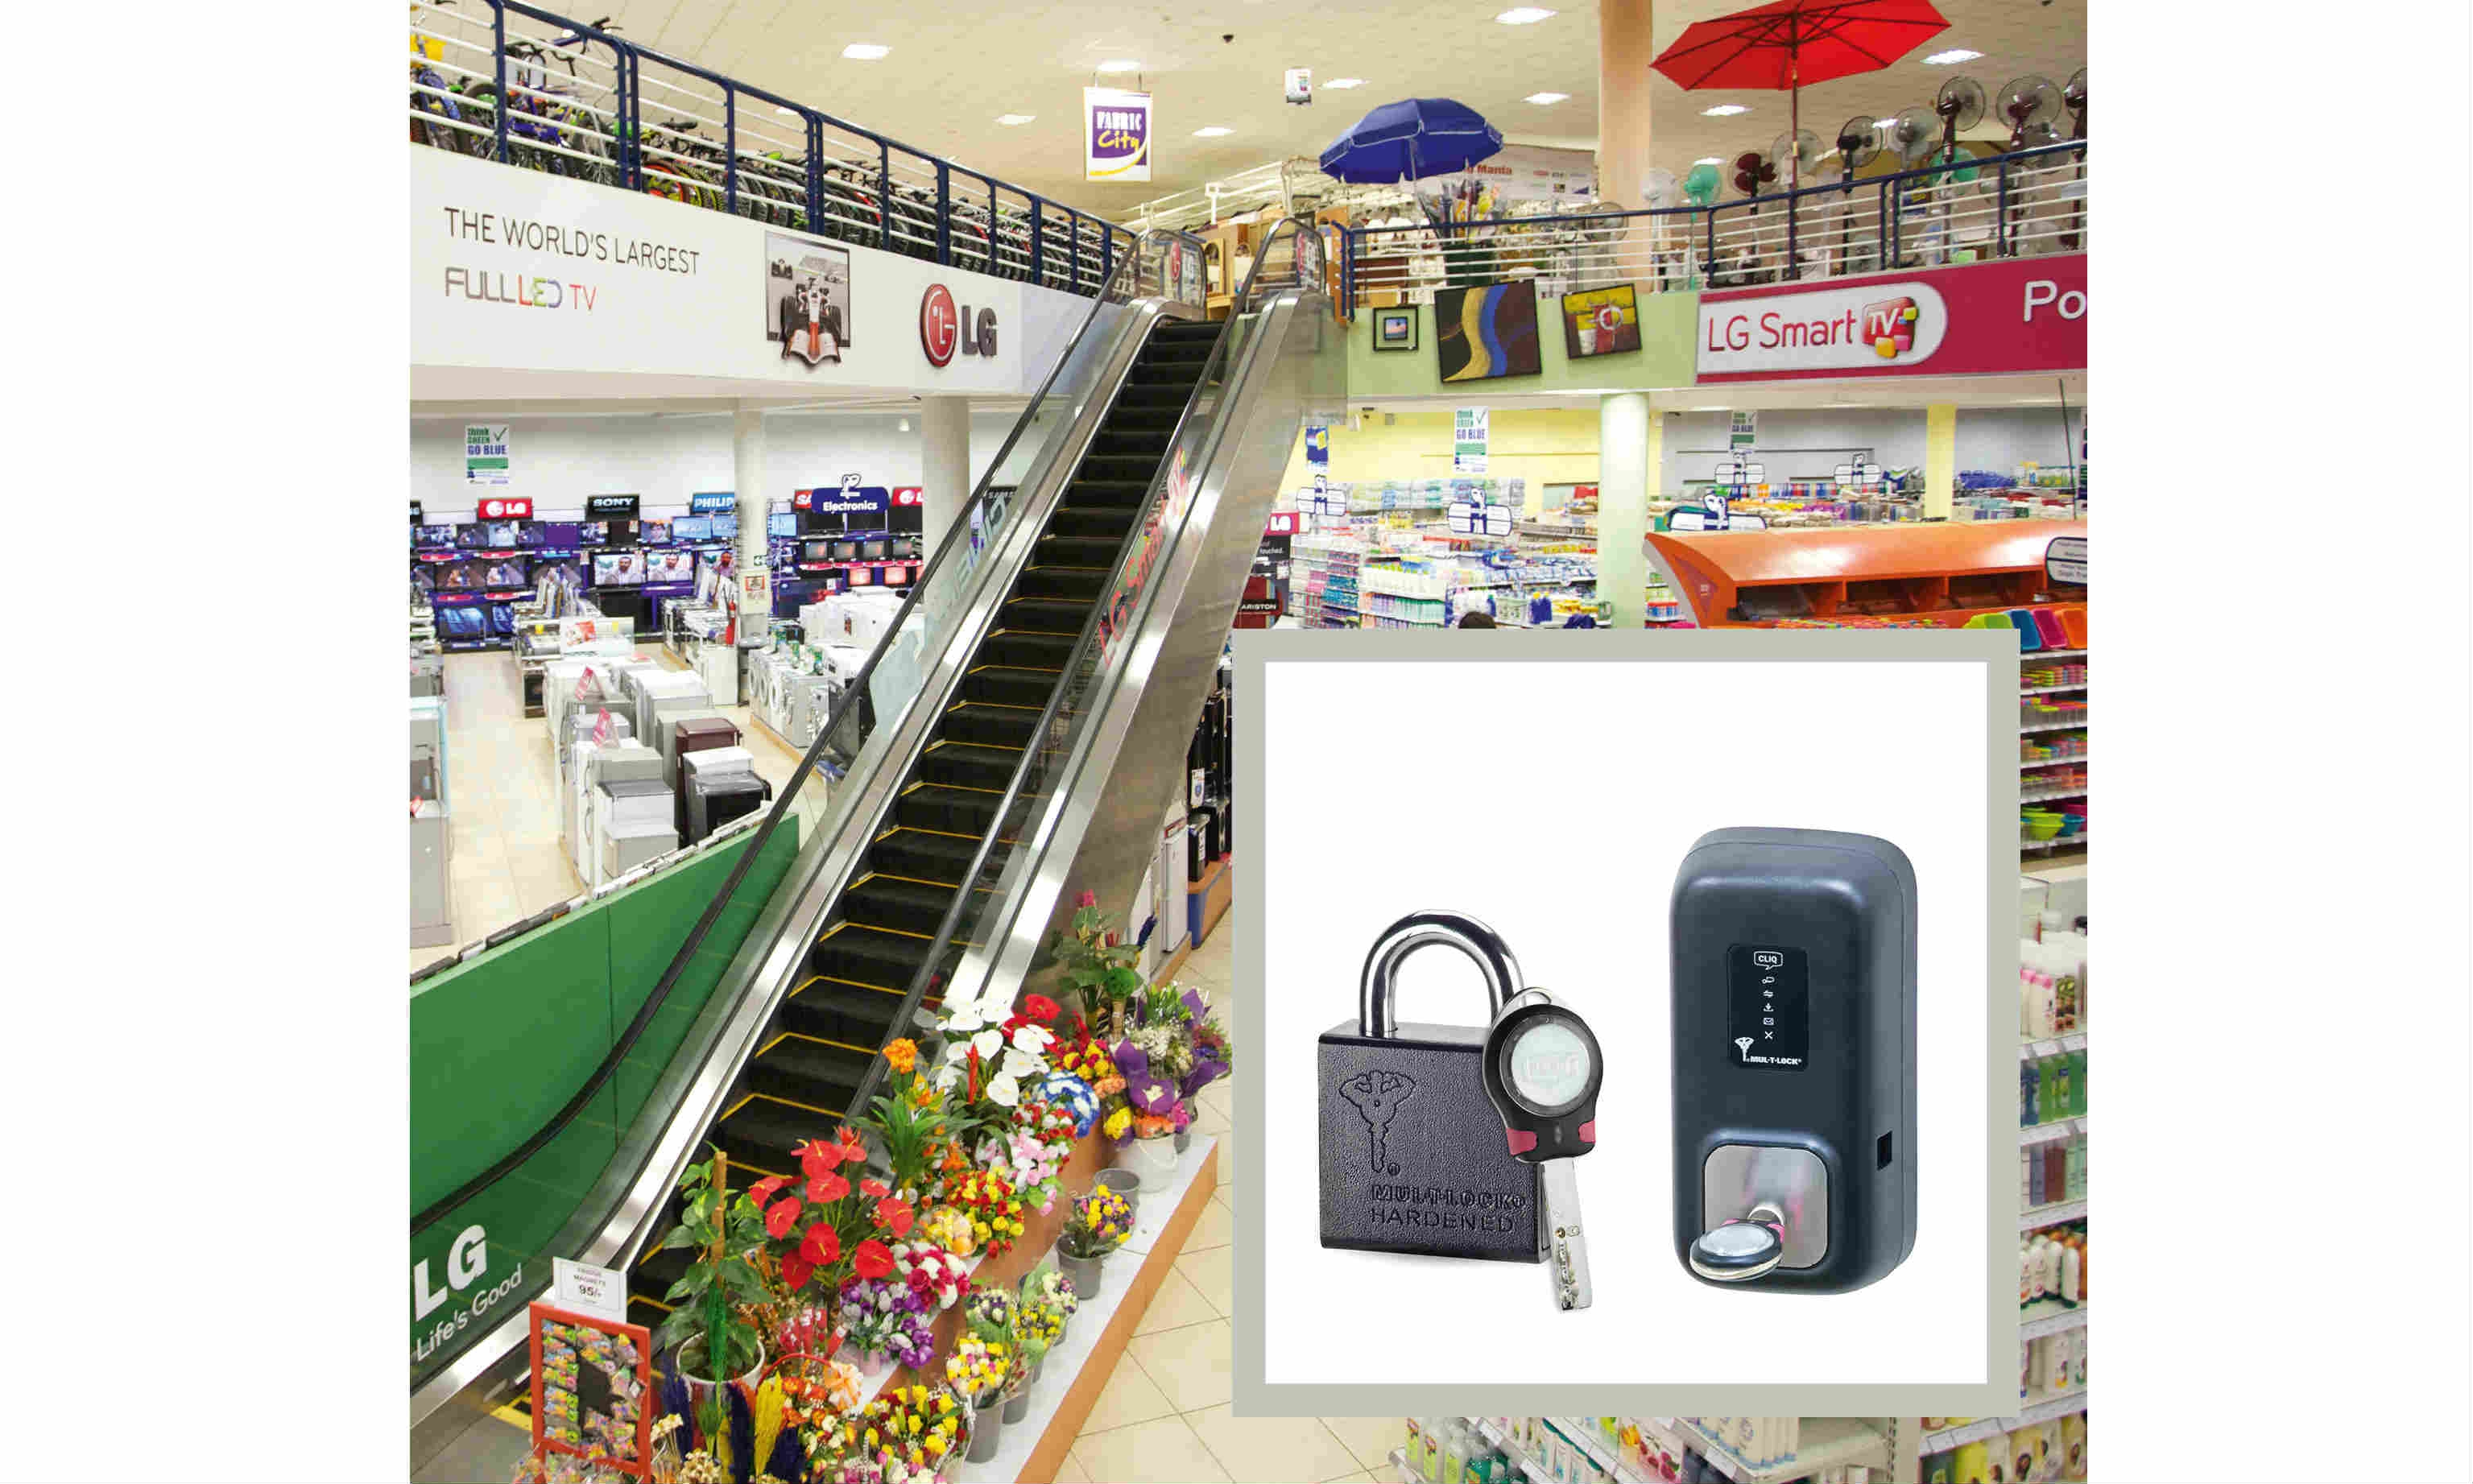 CLIQ® ends the security threat of lost keys at East Africa's major retailer